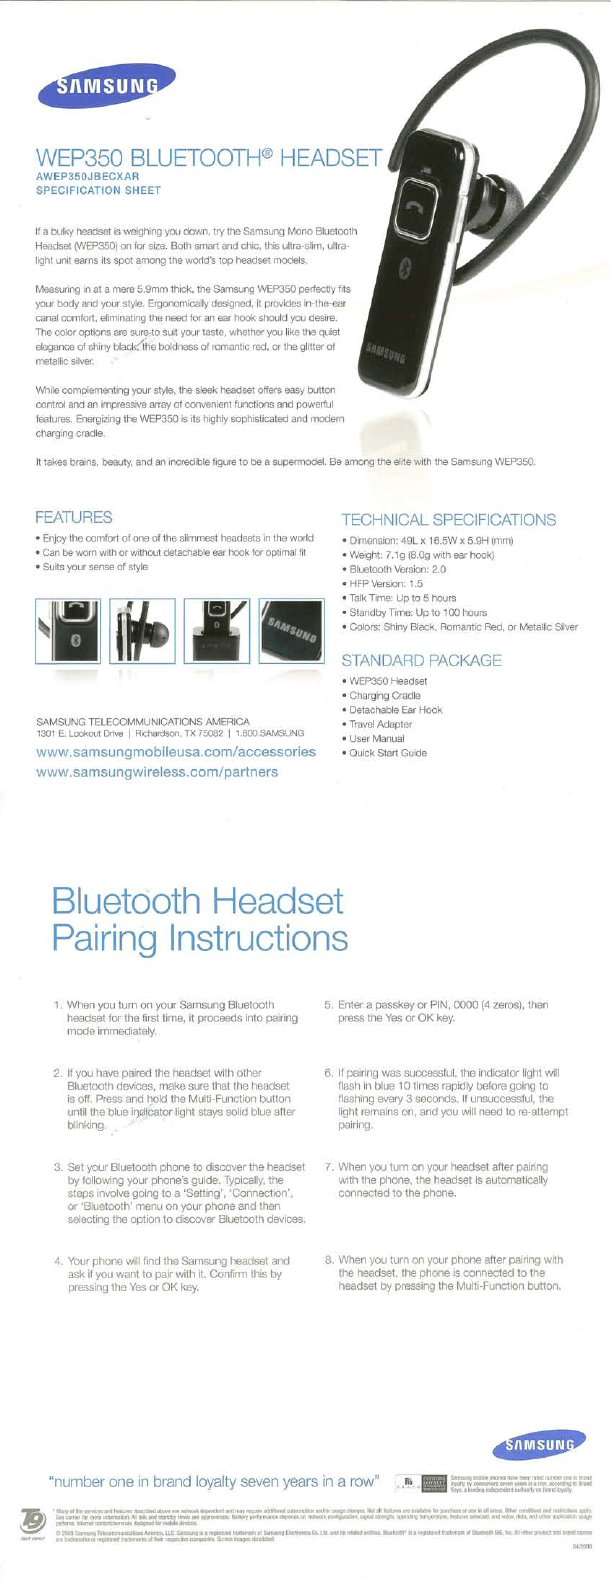 Samsung Bluetooth Headset WEP350 User's Guide